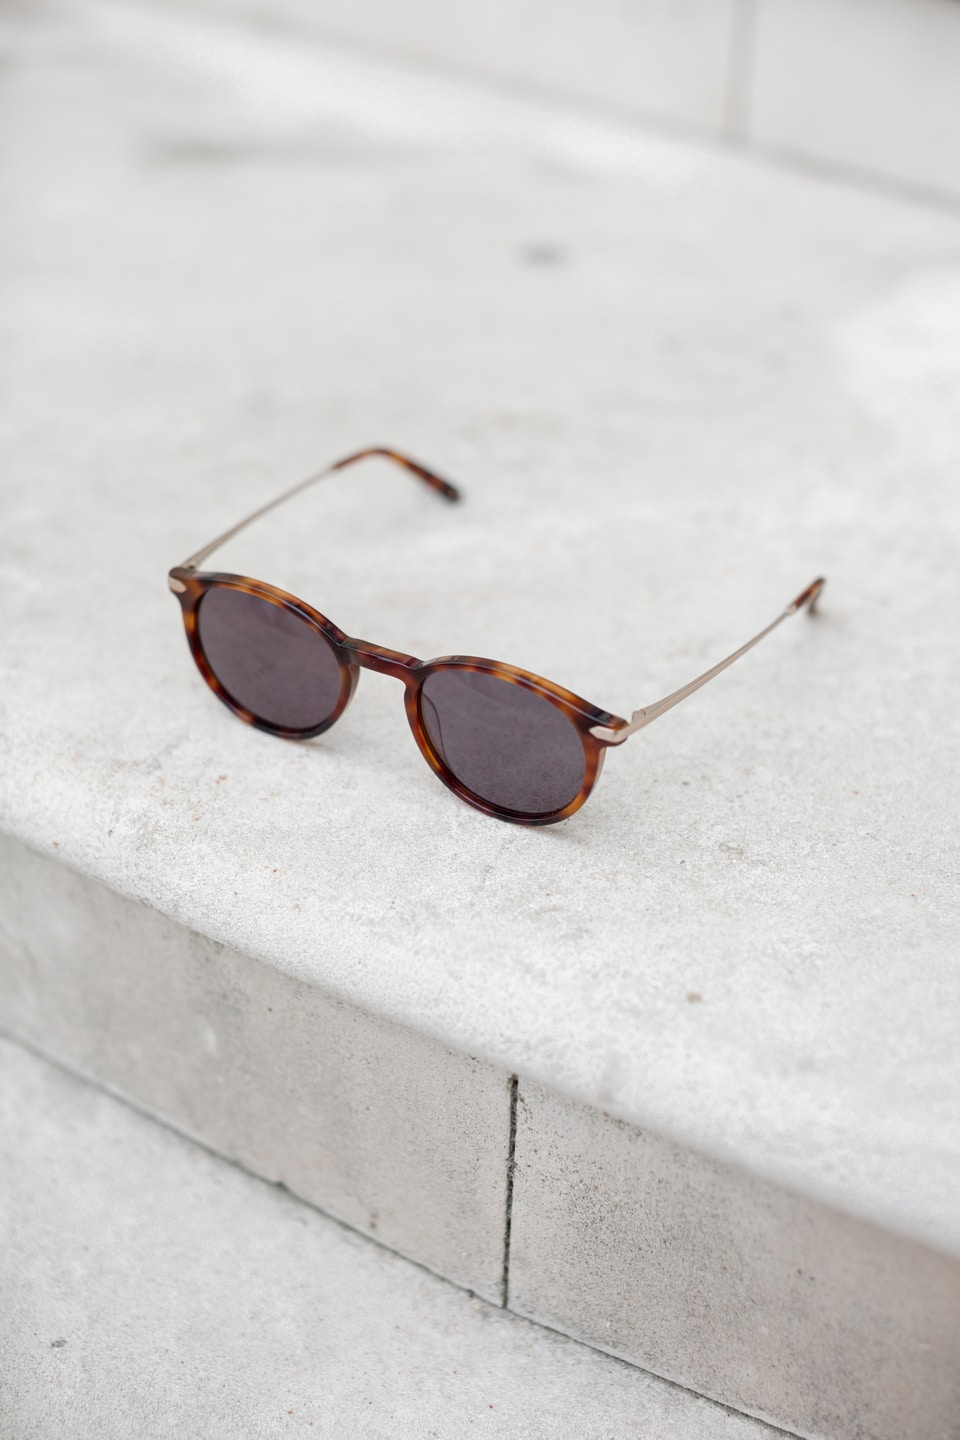 Sustainable sunglasses from Jimmy Fairly